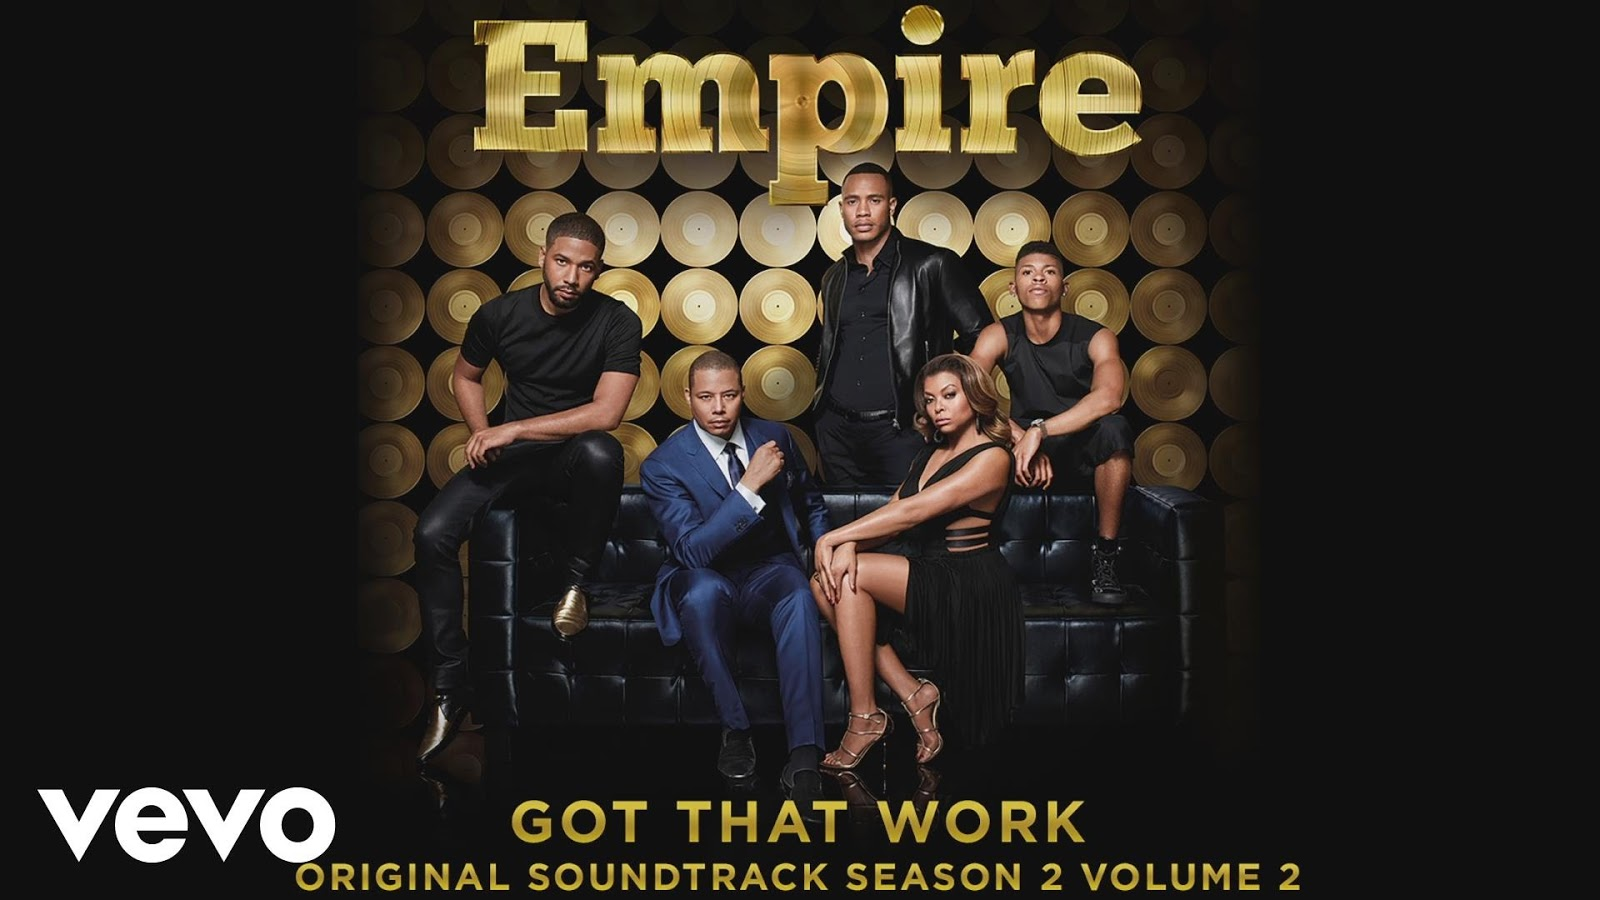 Empire songs free download mp3